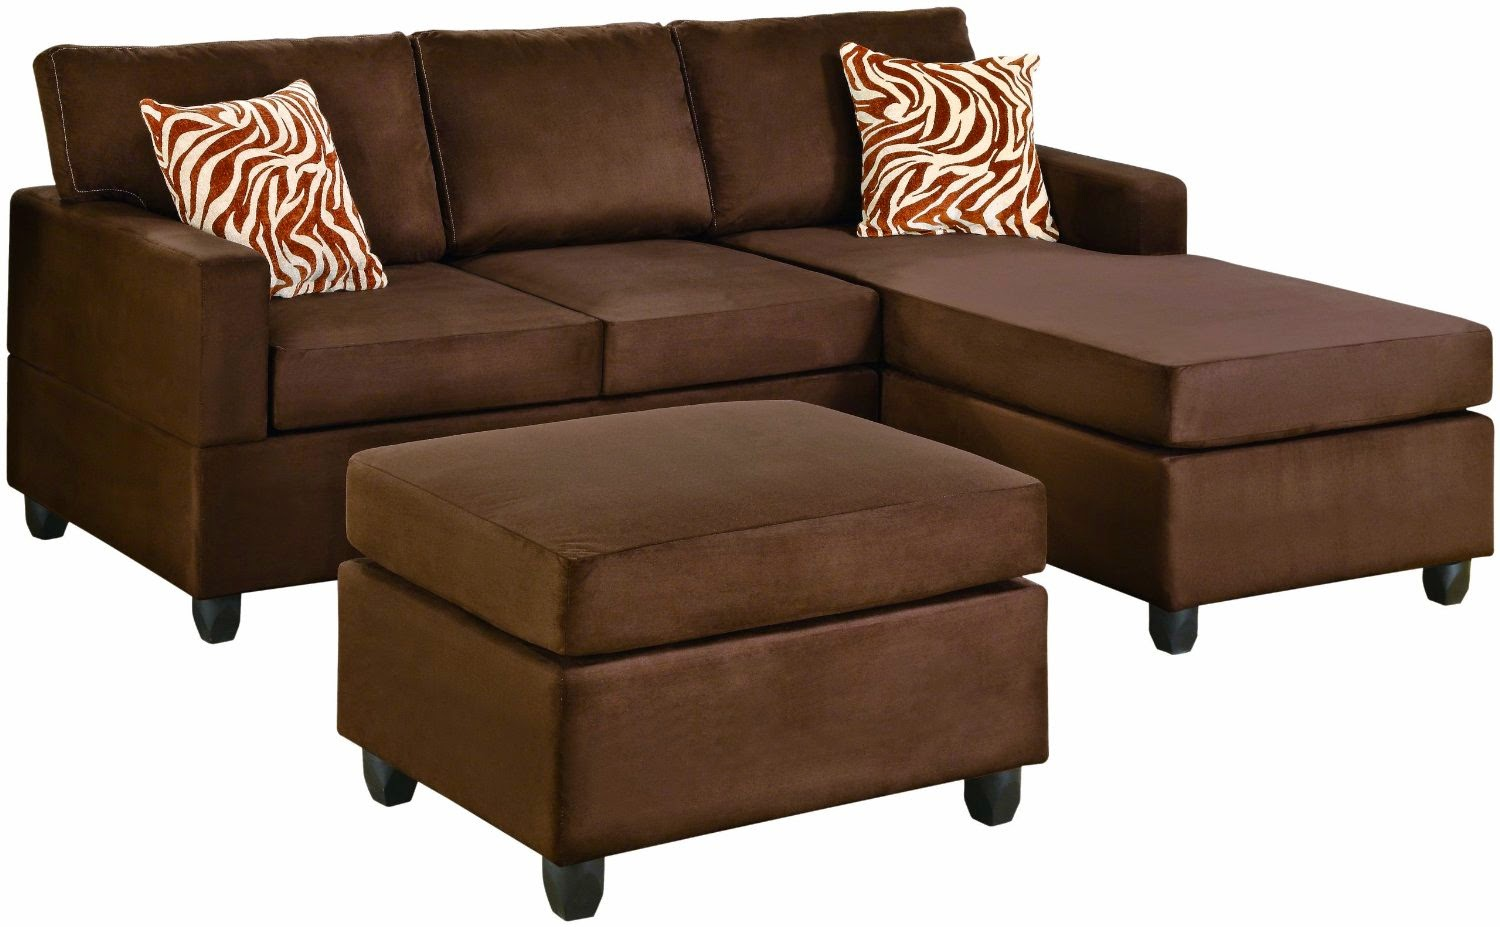 corner couch: small corner couch